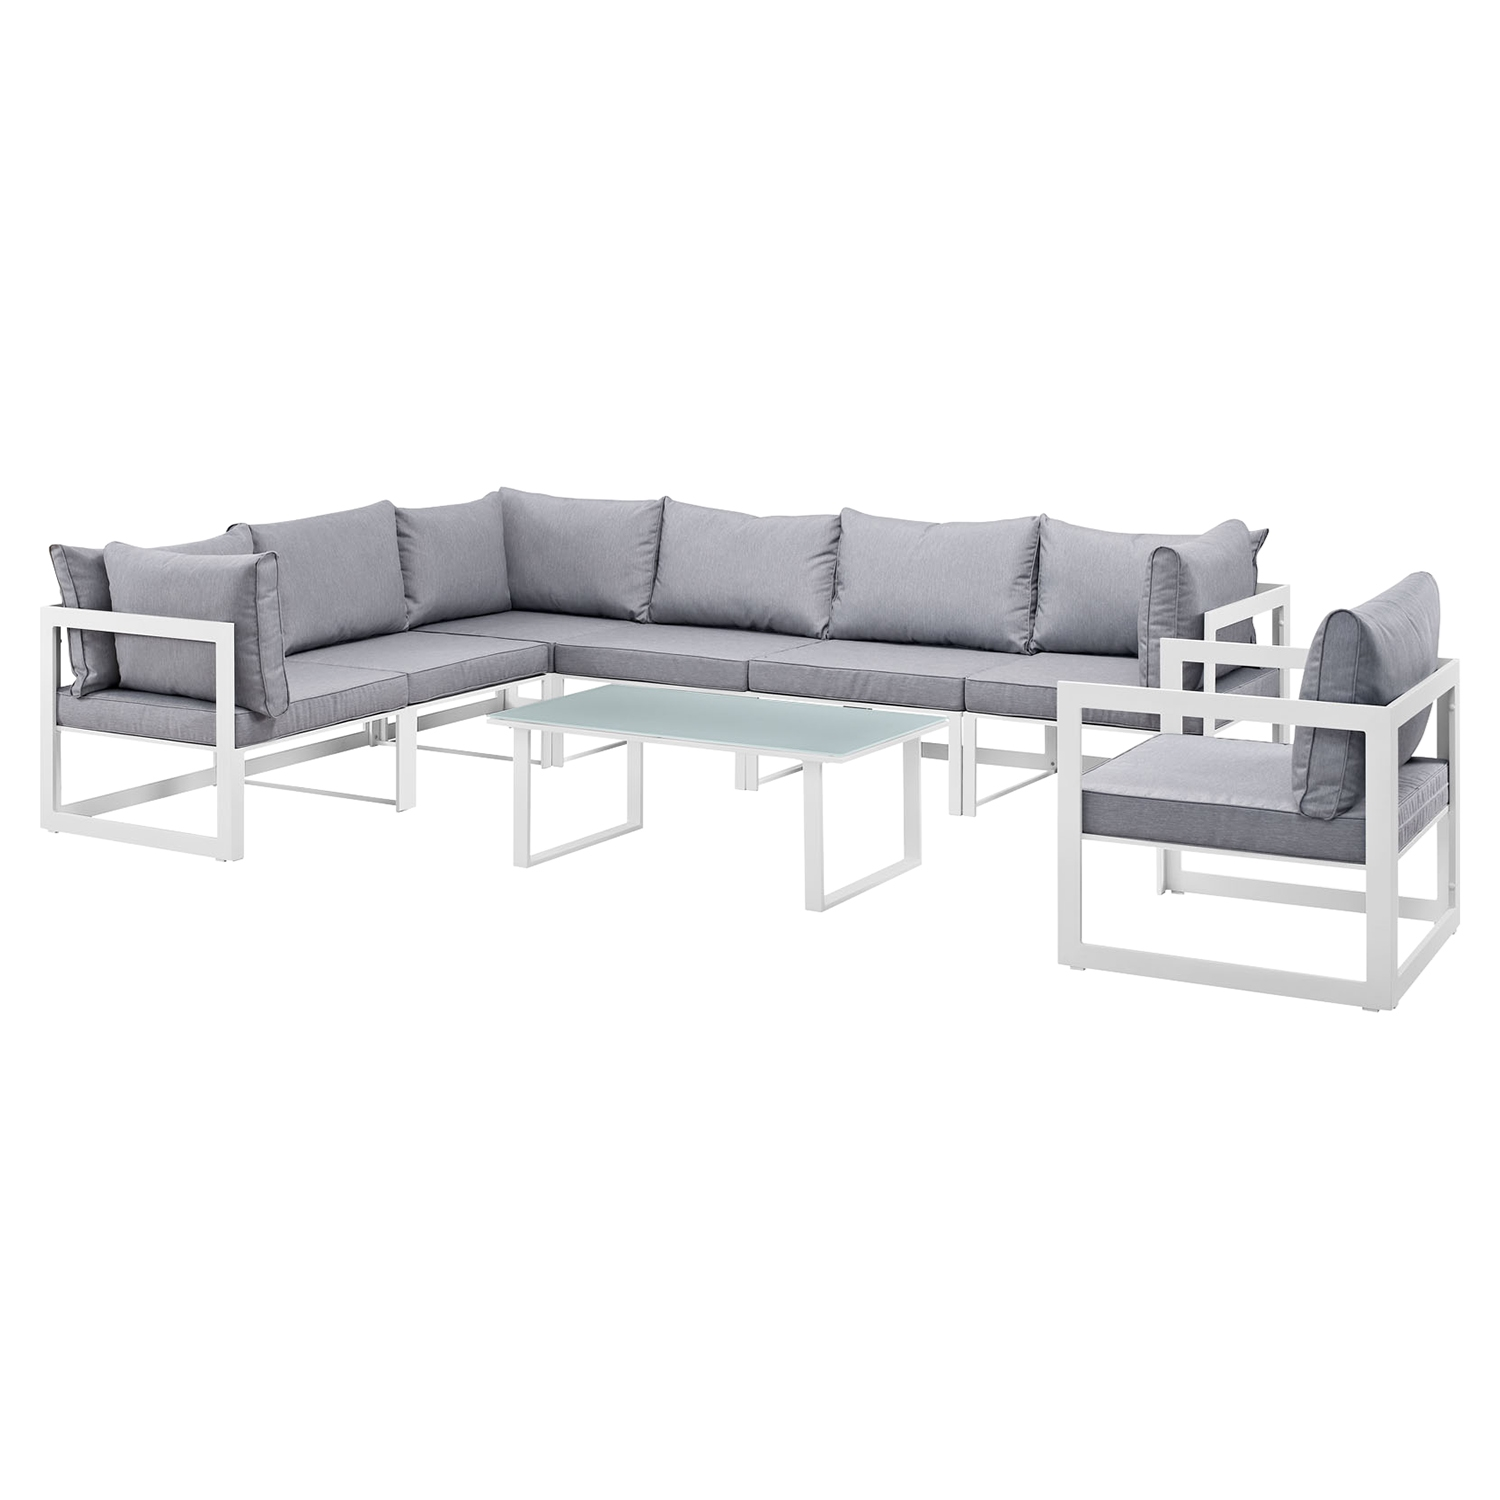 Fortuna 8 Pieces Patio Sectional Sofa Set - Gray Cushion, White Frame - EEI-1736-WHI-GRY-SET